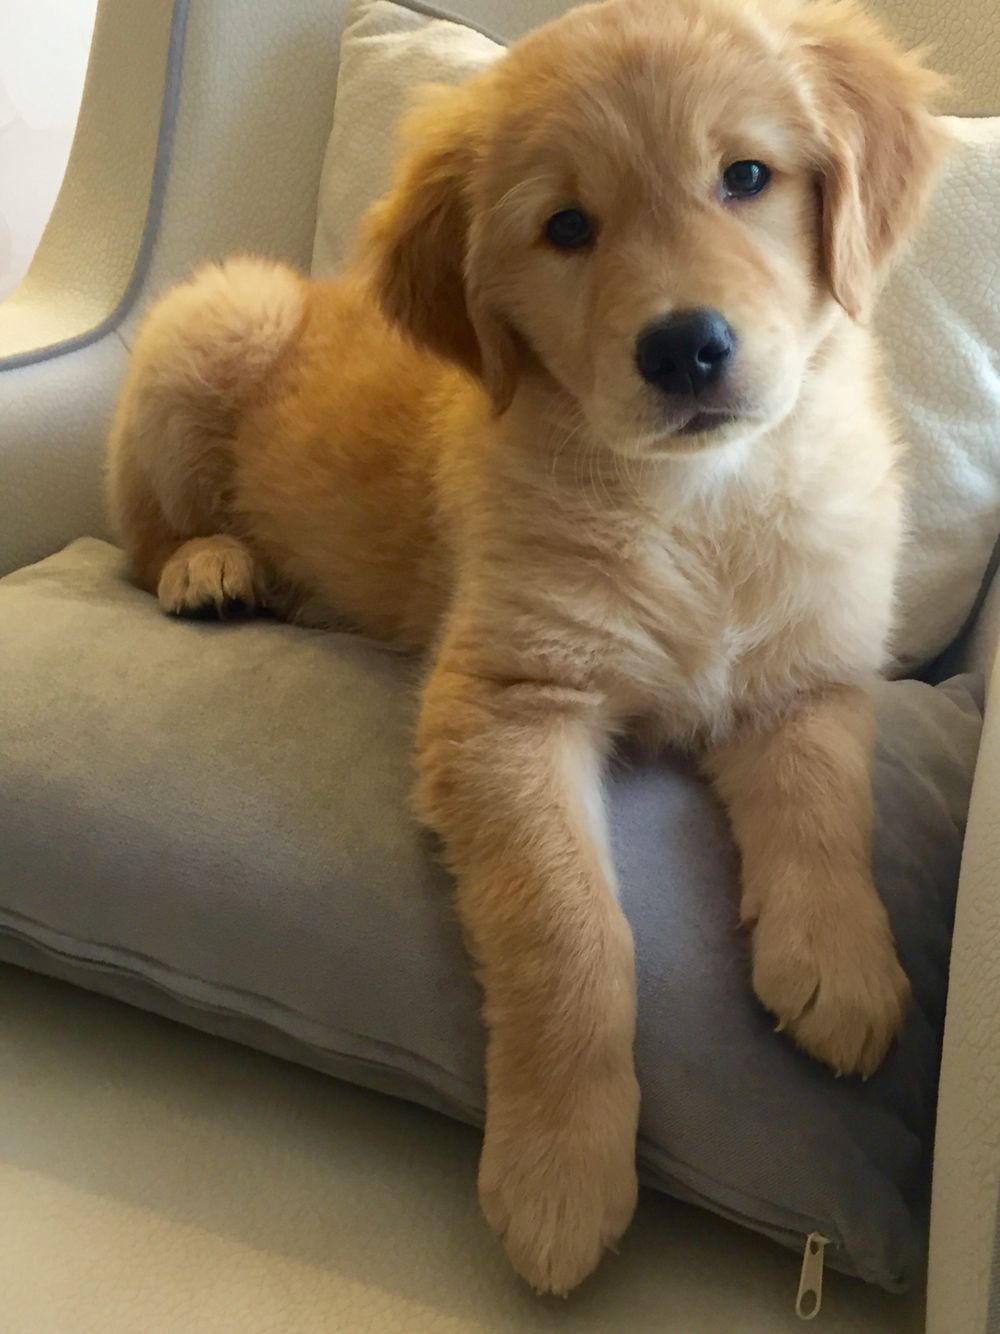 Pin By Kelsey Wray On Puppies Puppies Cute Dogs Cute Baby Animals